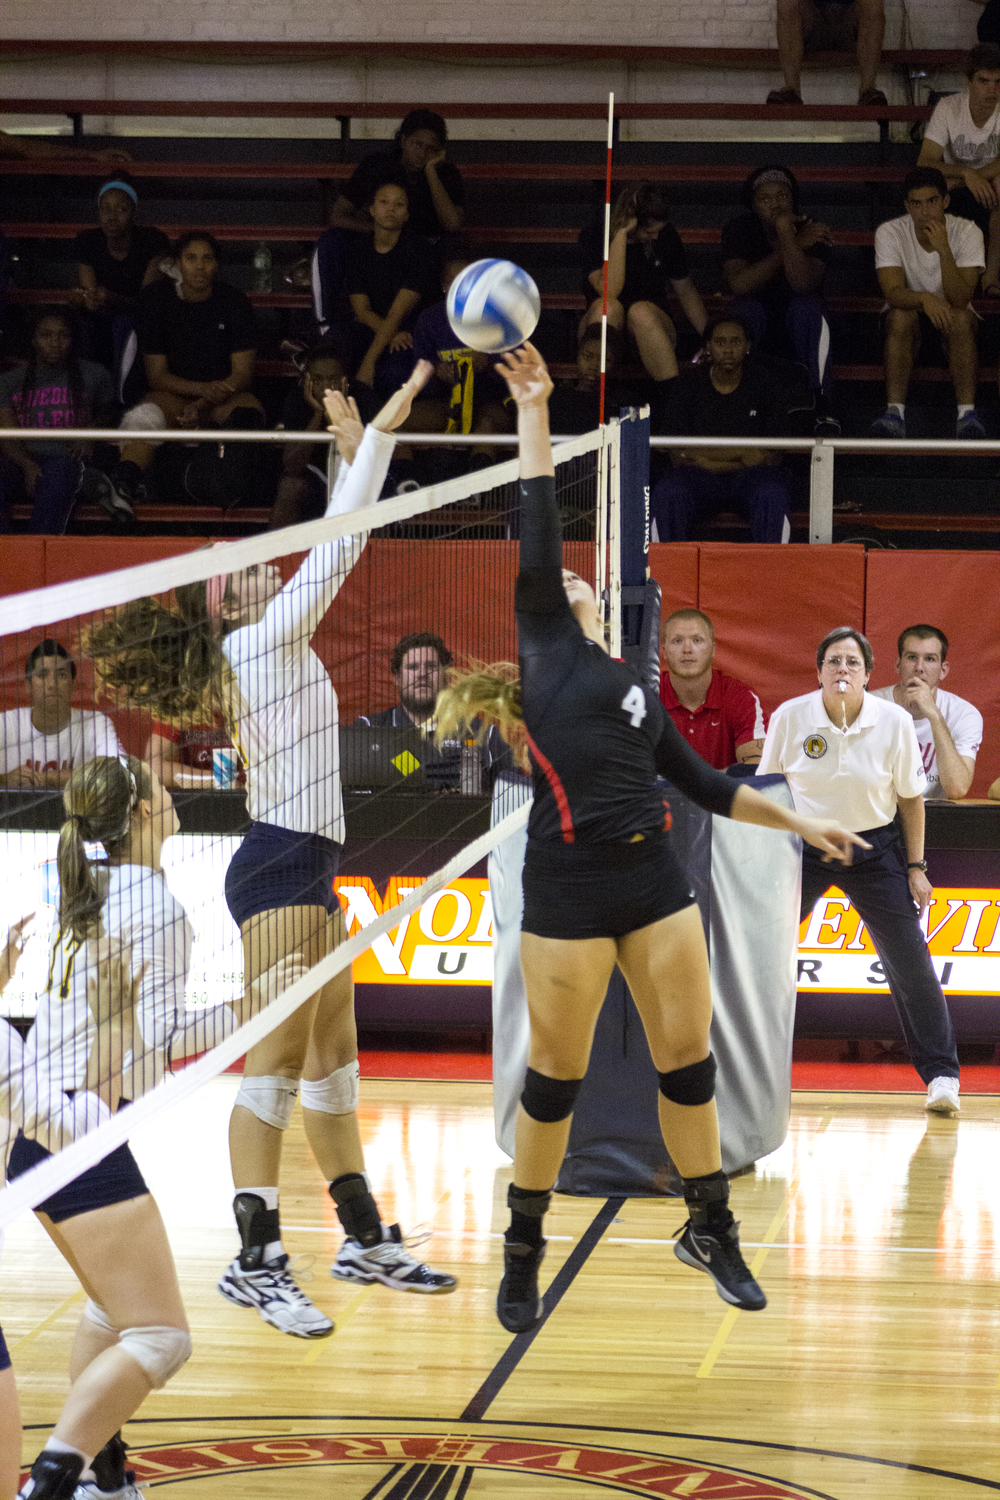 Sophomore Ashlyn Wilkinson tips the ball over to the opponent's side of the court.